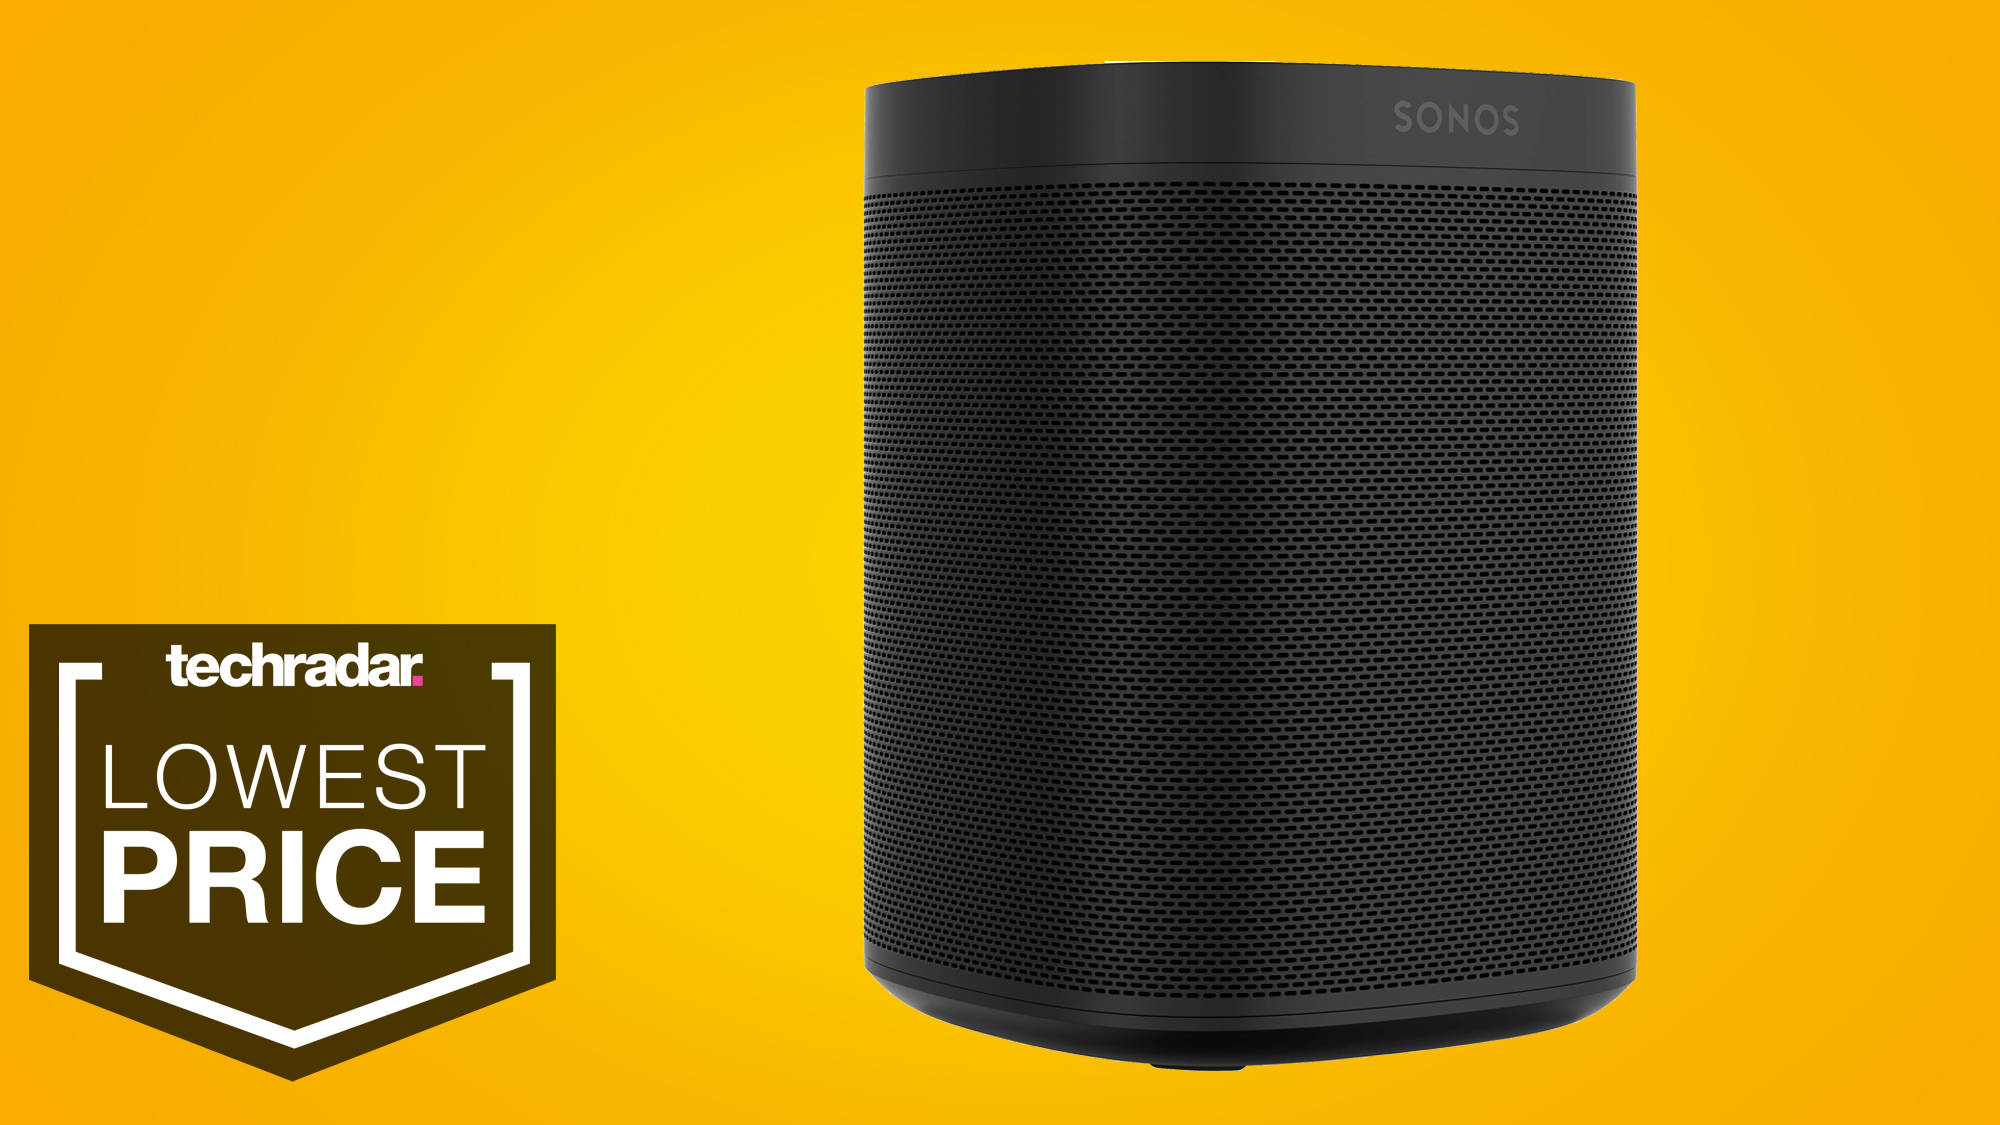 Sonos One equals its lowest ever price in this January sales bargain